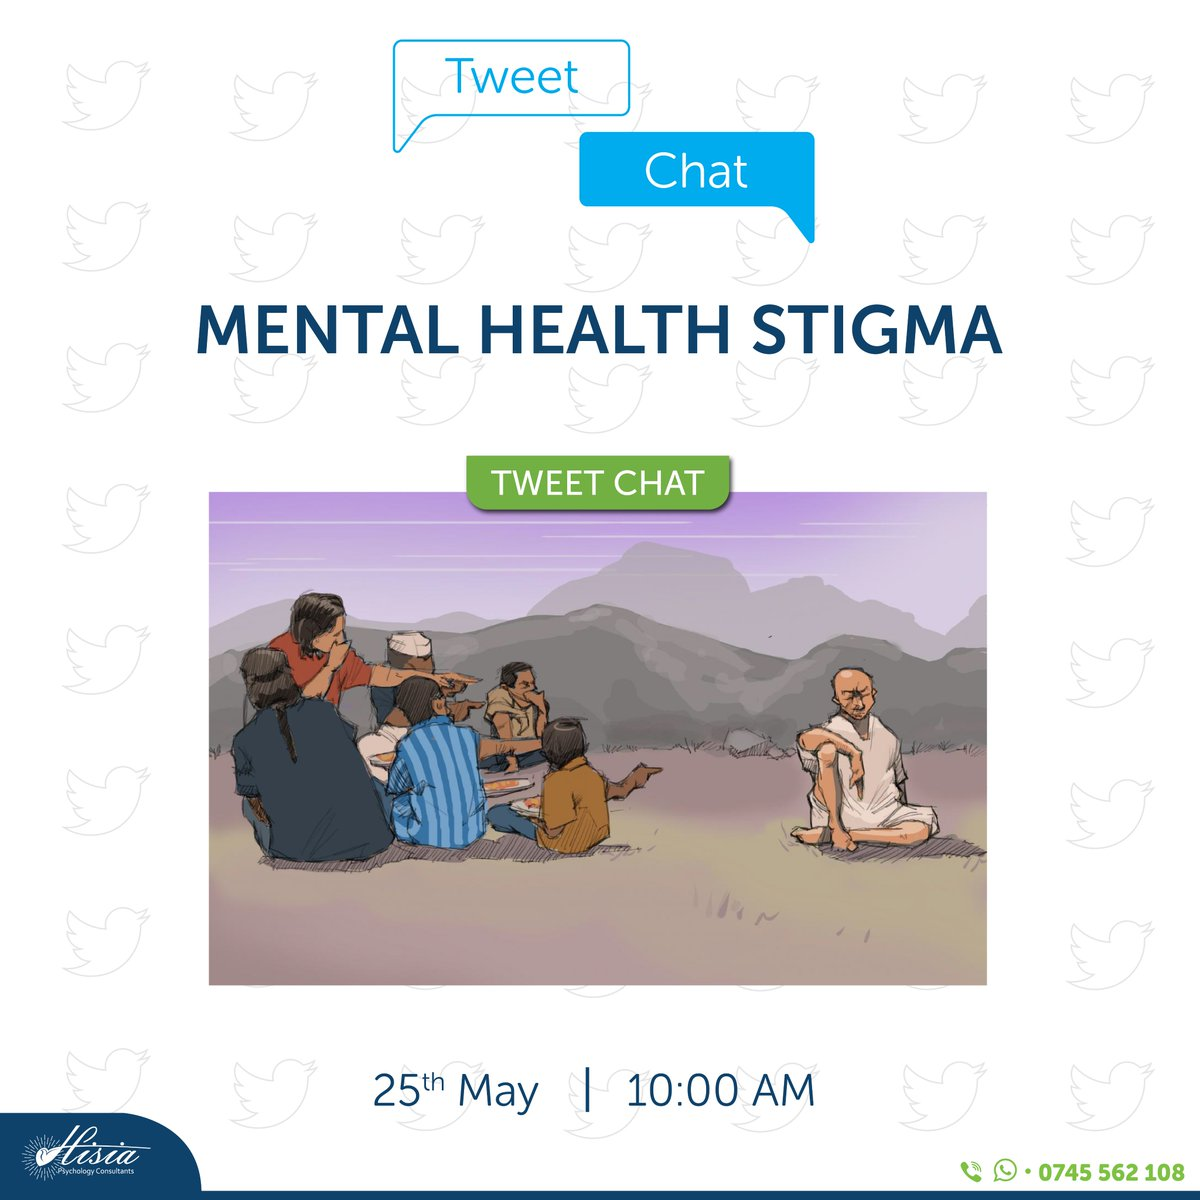 We have dedicated this month's final tweet chat to handle the Stigma that surrounds Mental Health, as May is Mental Health Awareness Month. Let's join hands and demystify mental health.  Today's guests are @MUnsilenced and @haven_mental Join us 10:00 AM for this conversation. https://t.co/yfntxVMmOM